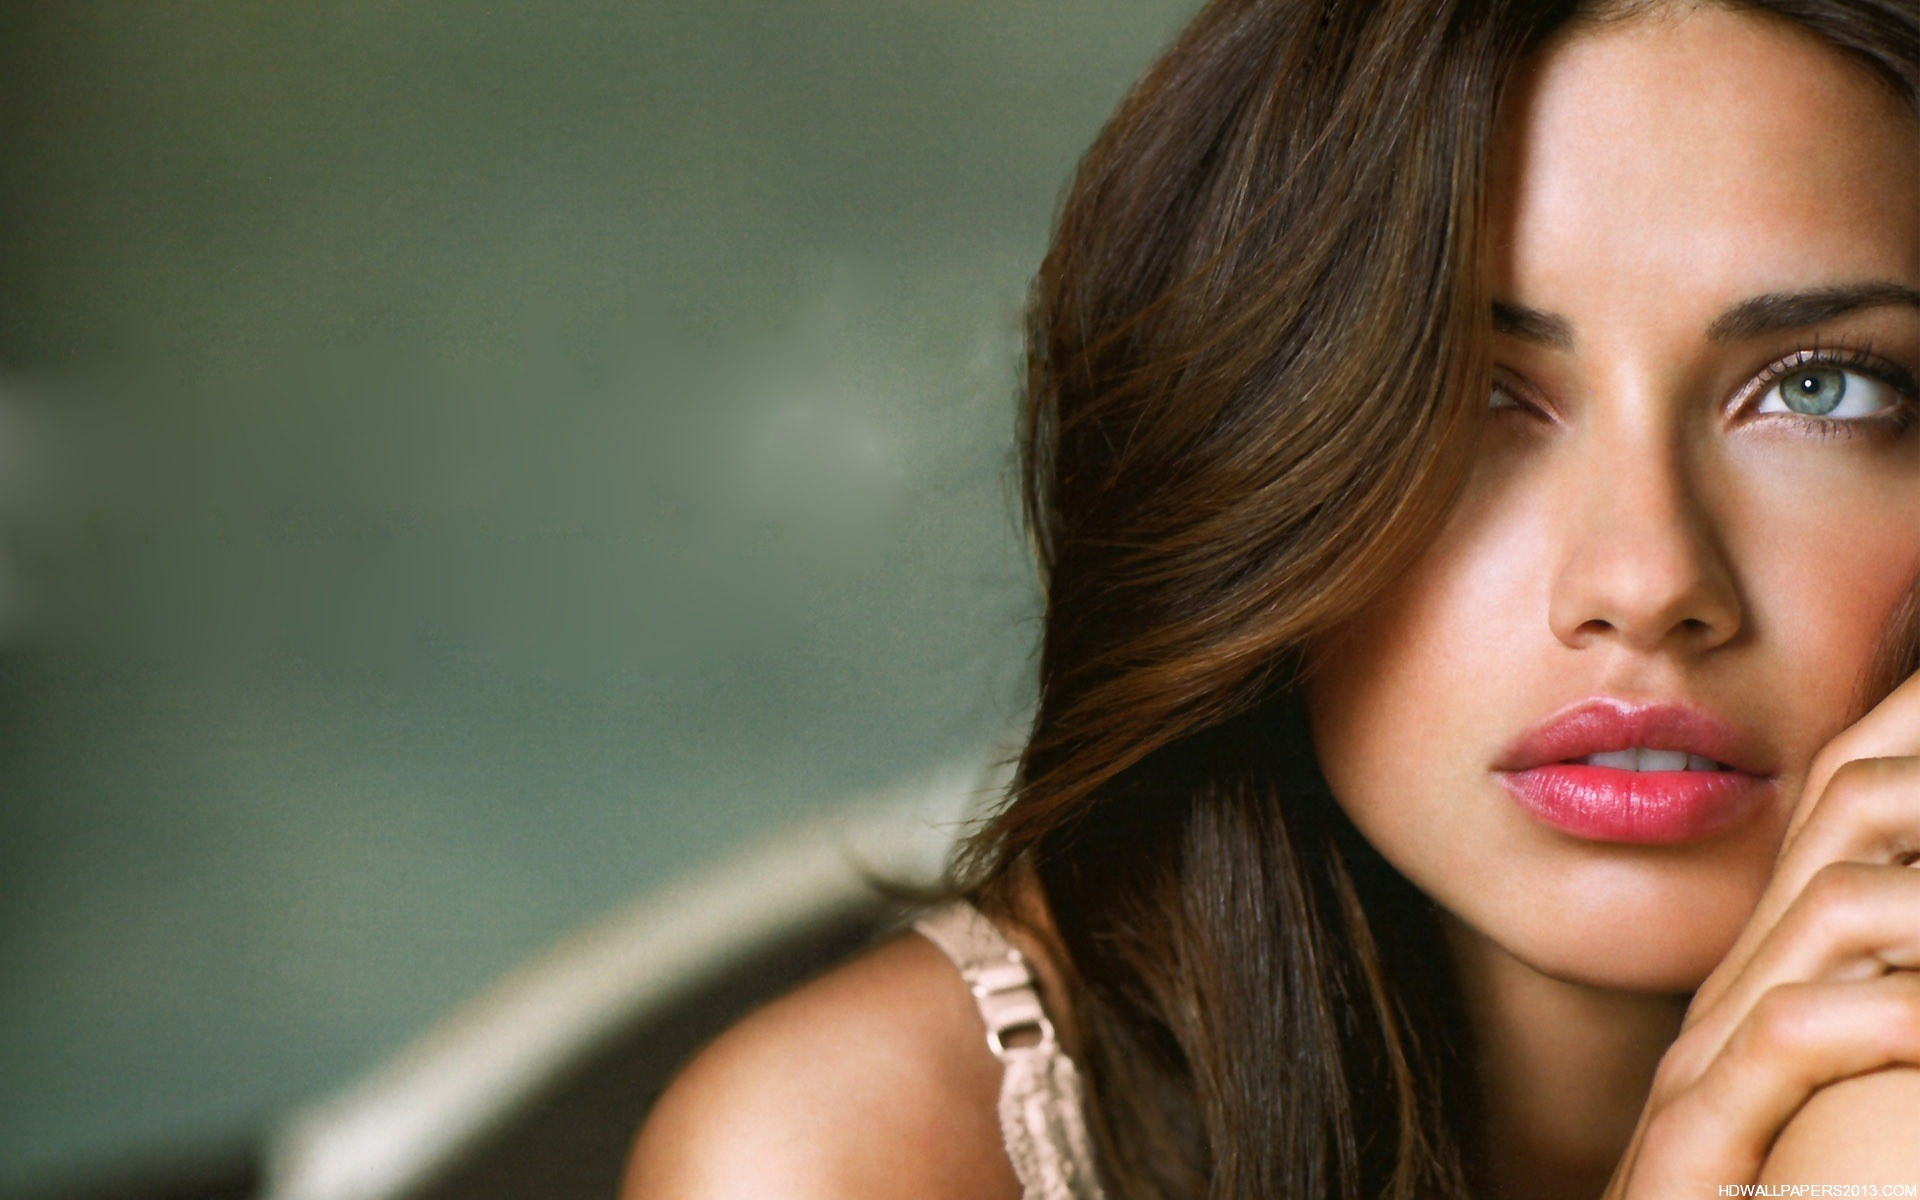 Adriana Lima Wallpapers 1920×1080 Adriana Lima HD Wallpapers (61 Wallpapers)  | Adorable